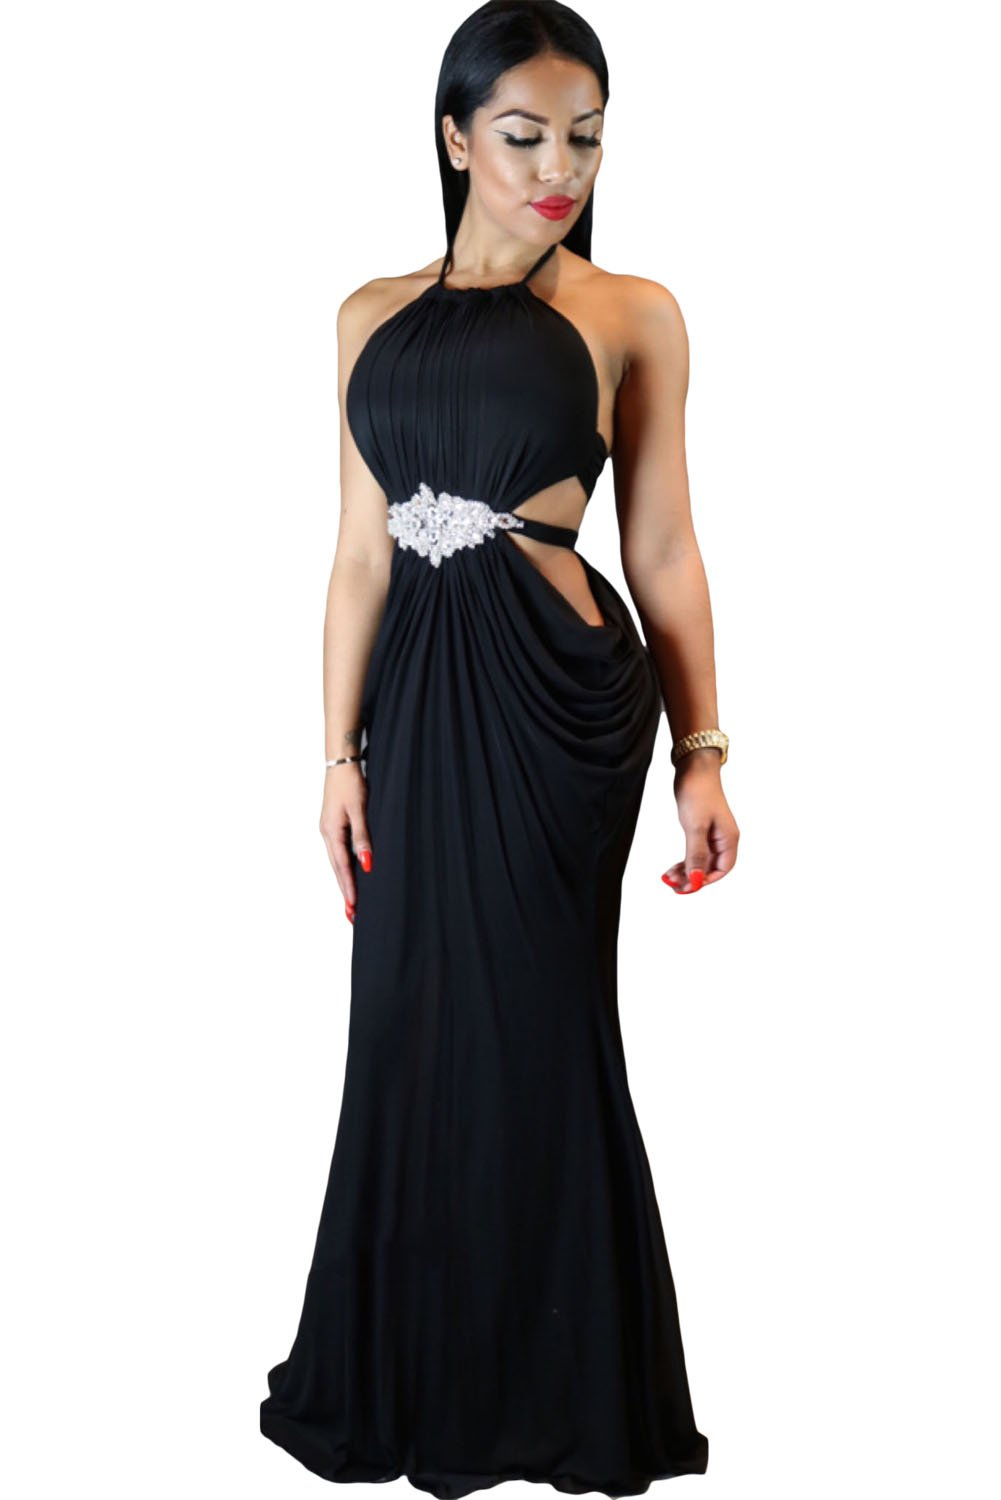 Women Formal Cutout Halter Black Evening Gowns - Online Store for ...